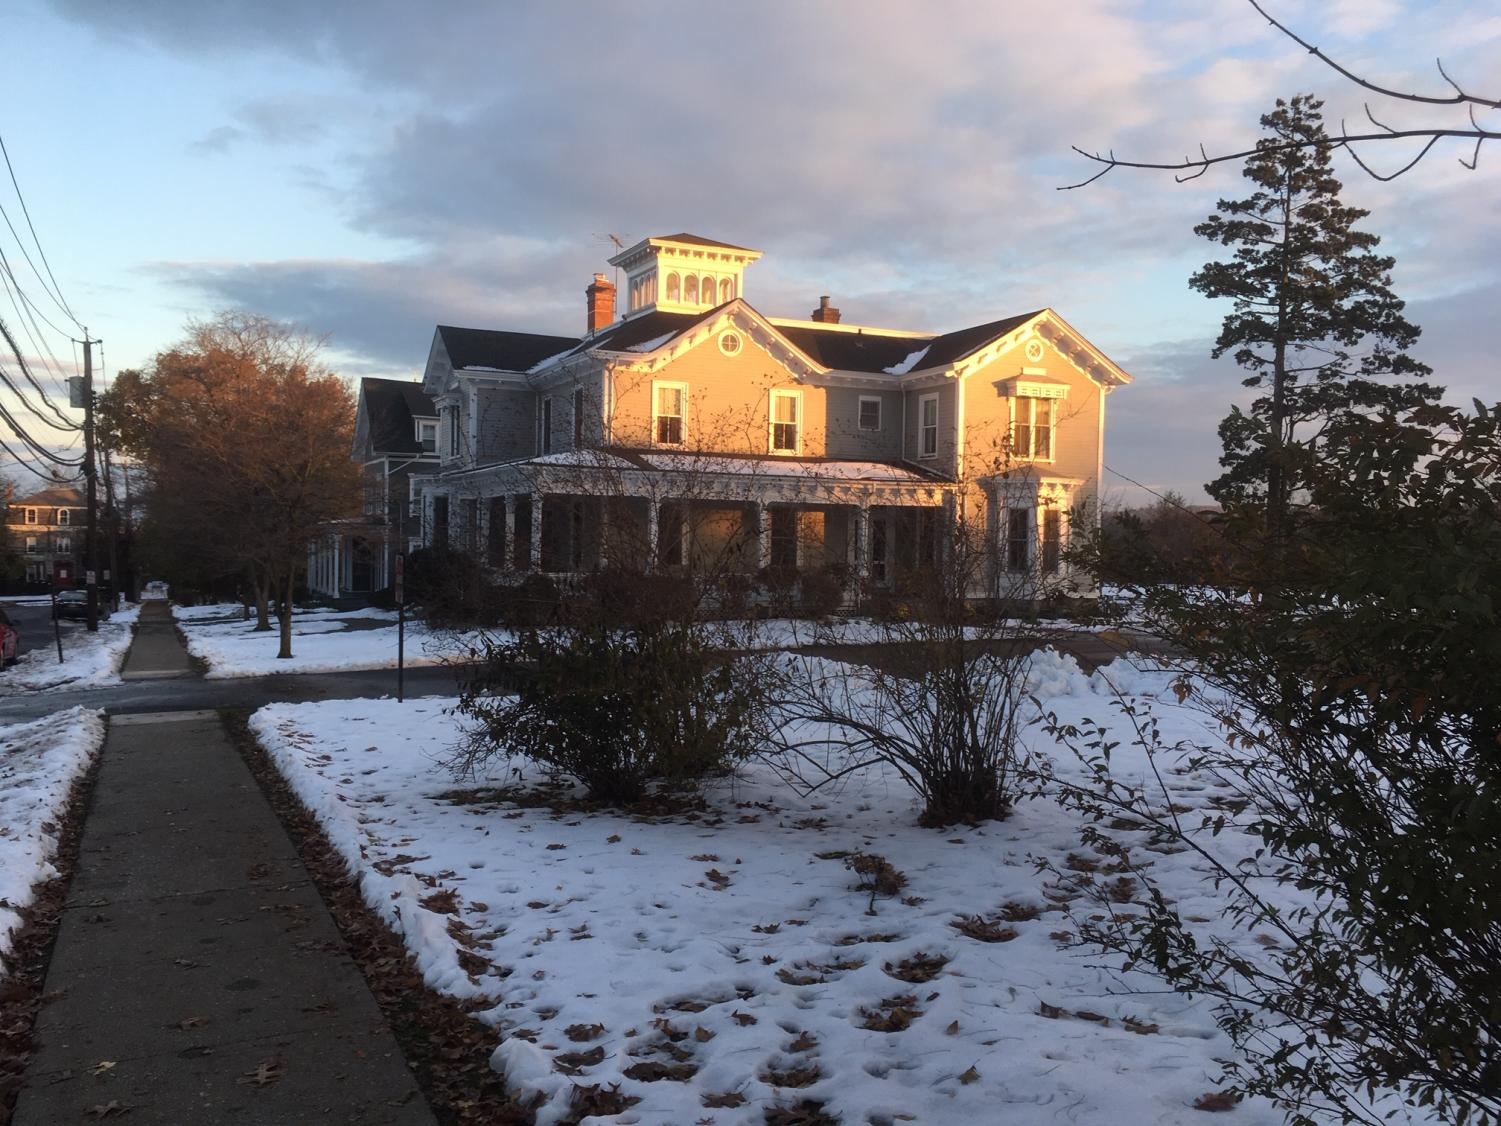 The sun rises on Park Cottage on the morning after Winter Storm Avery.